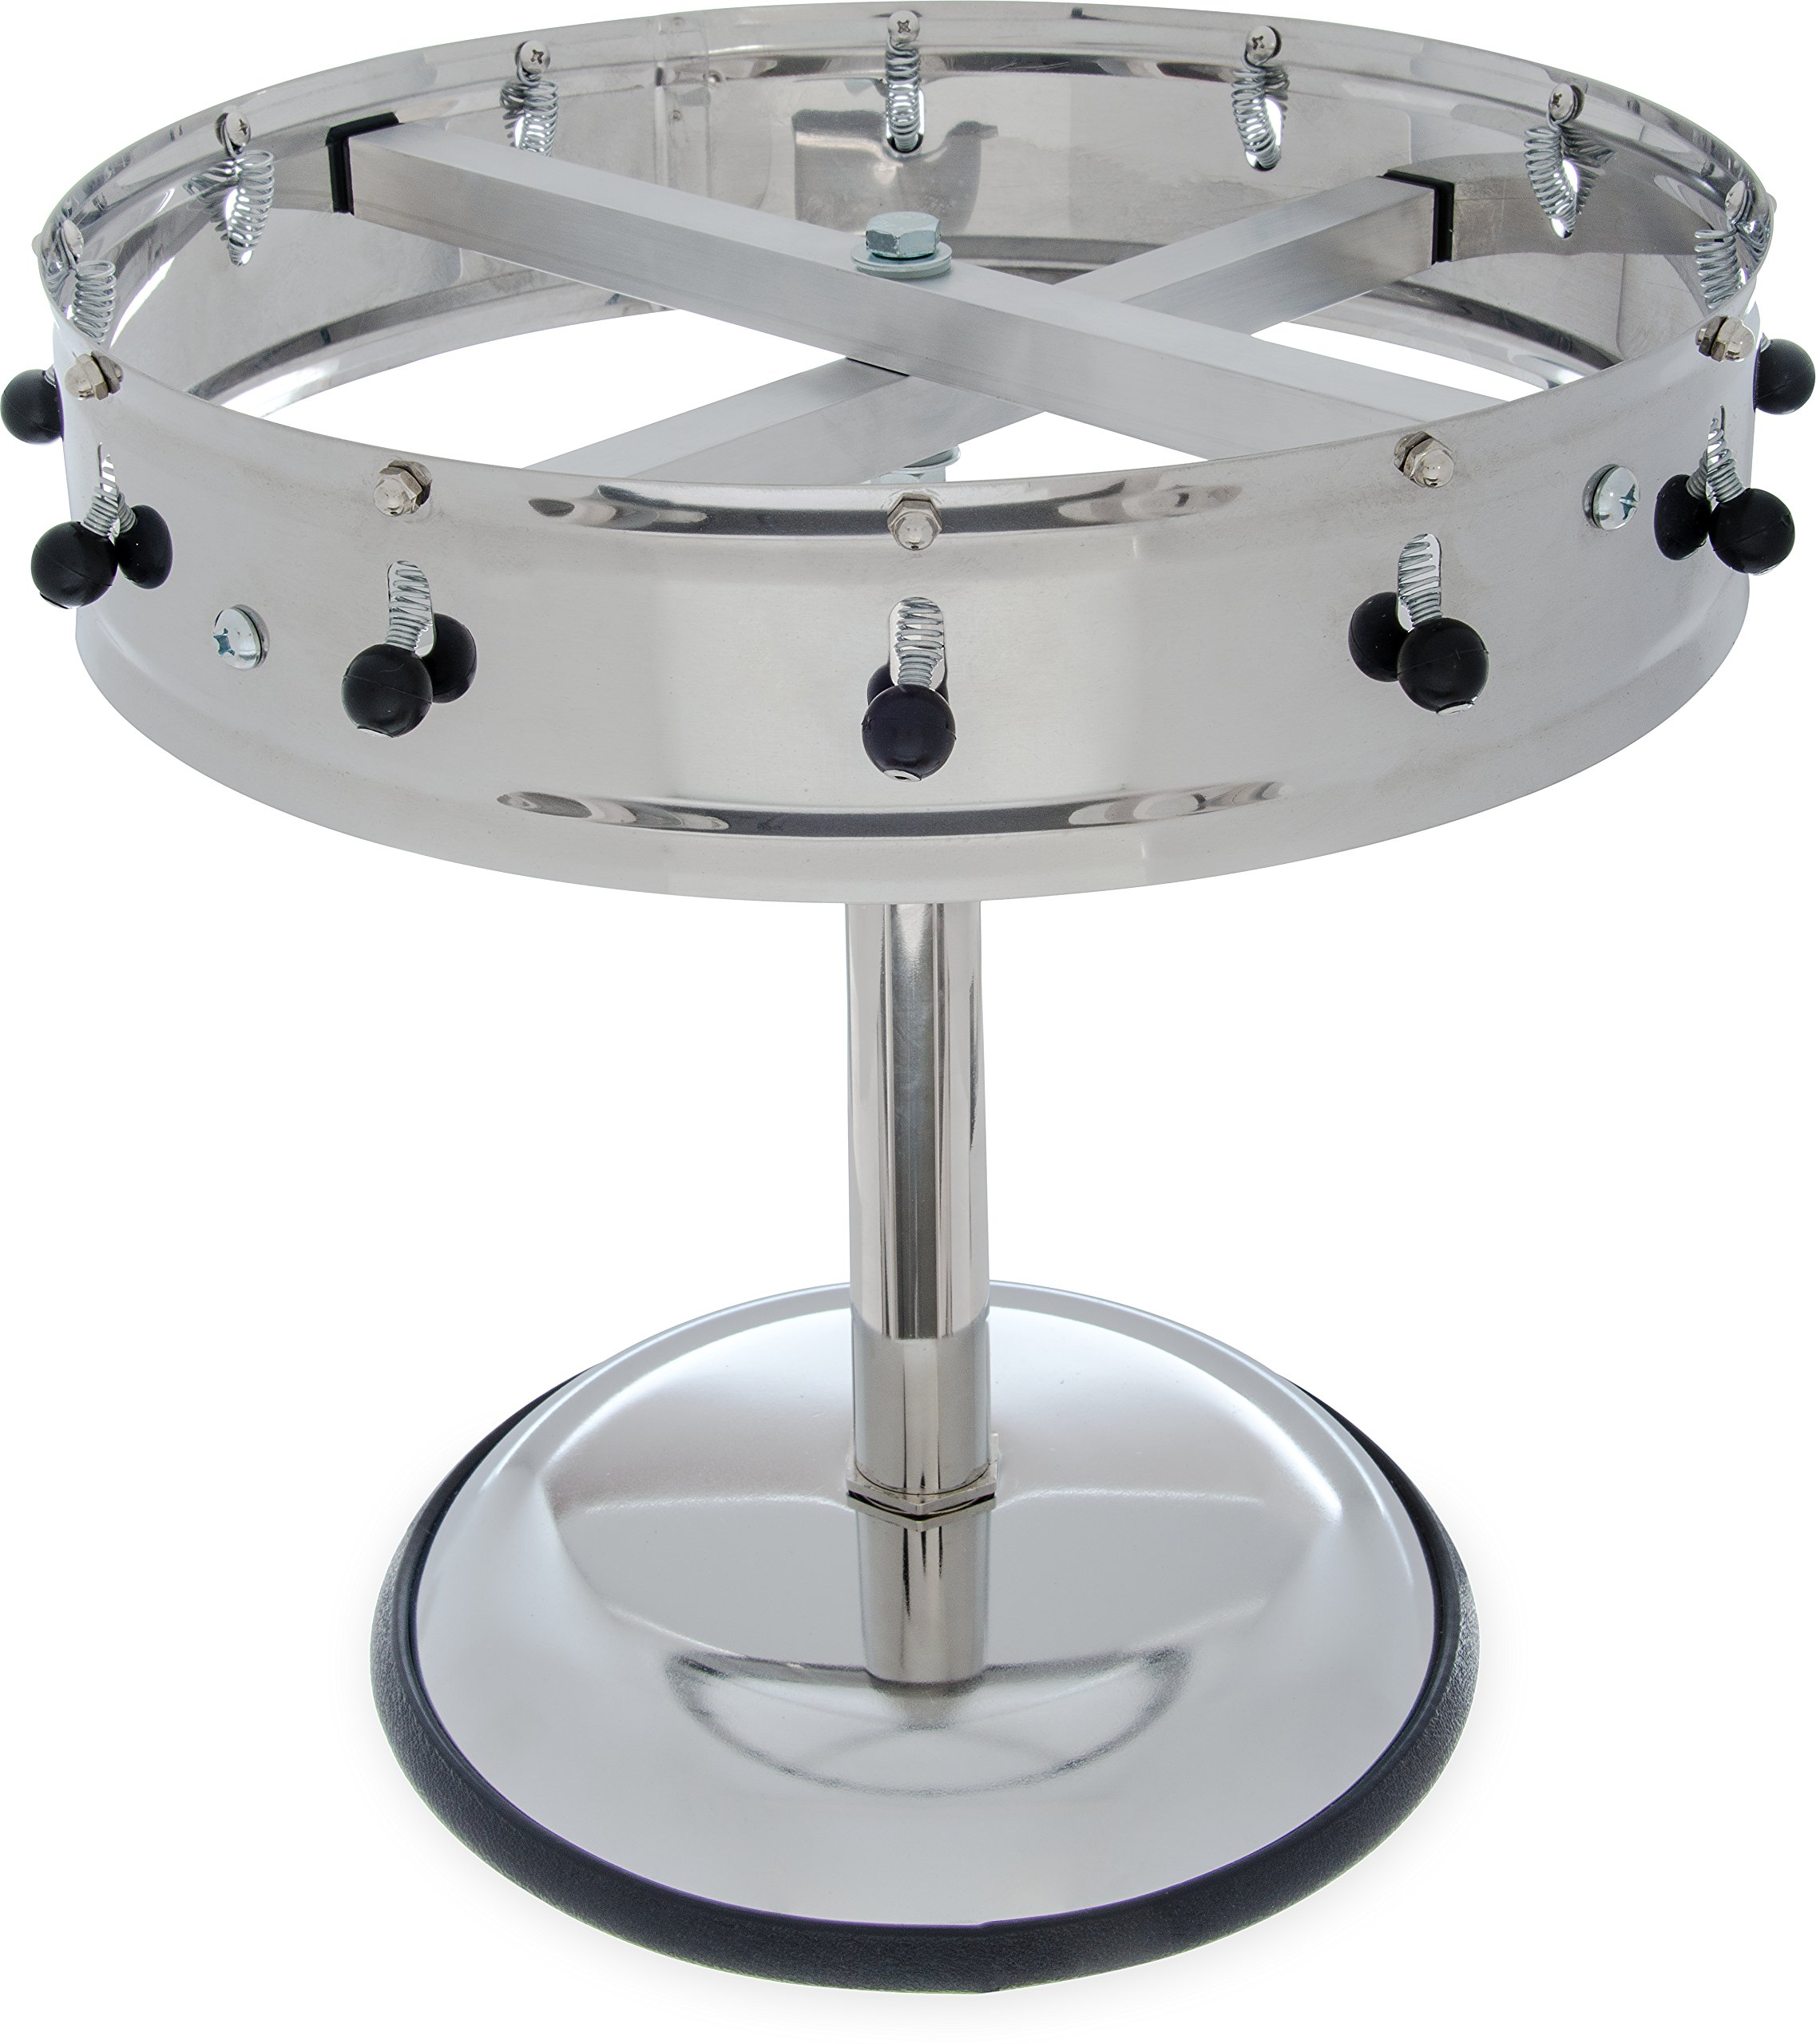 Carlisle 3812MP Stainless Steel Portable Order Wheel with 12 Clips, 14'' Diameter x 5.75'' Height